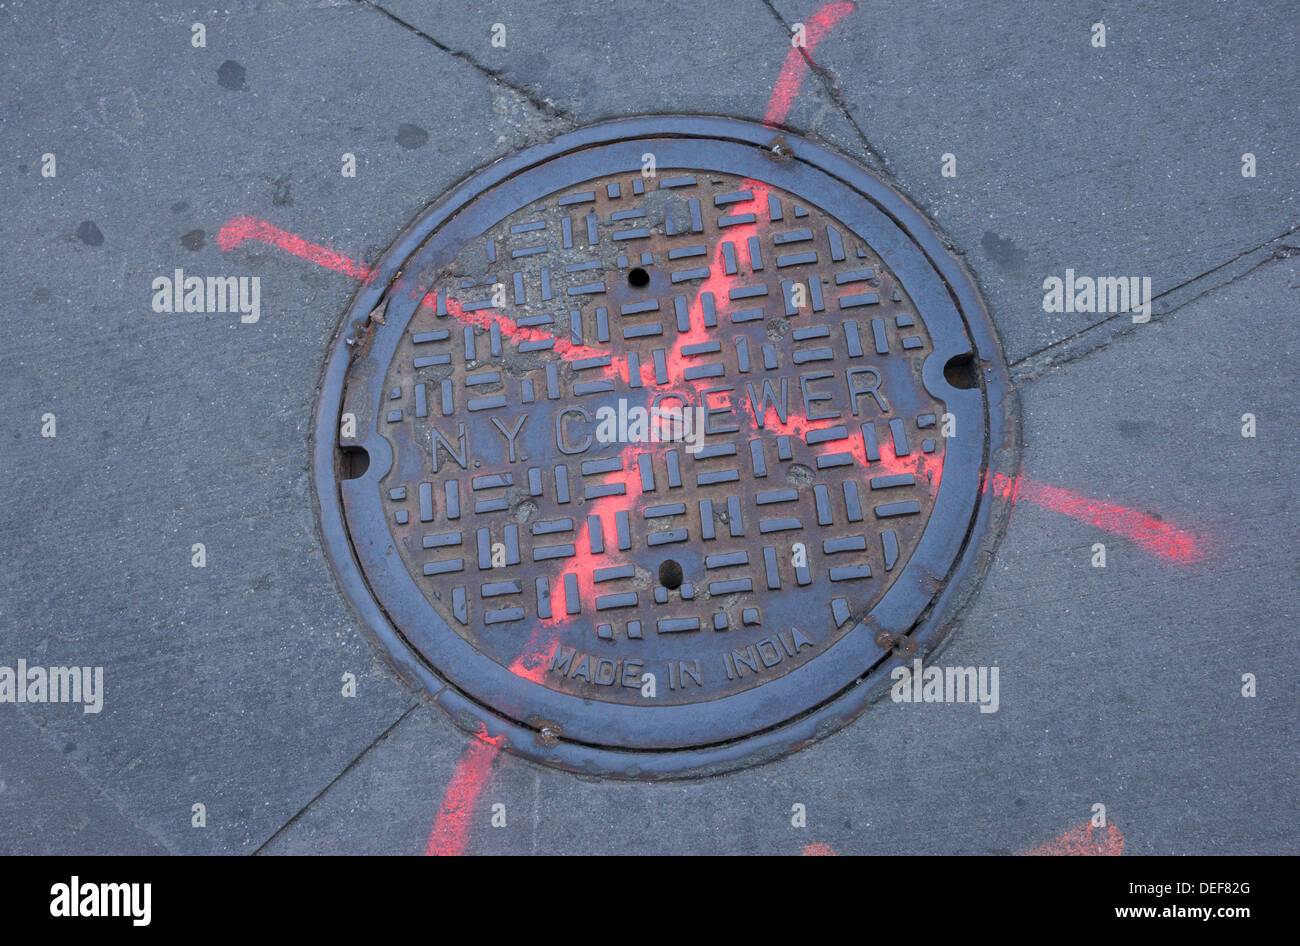 Manhole cover for access to the New York City sewer system - Stock Image